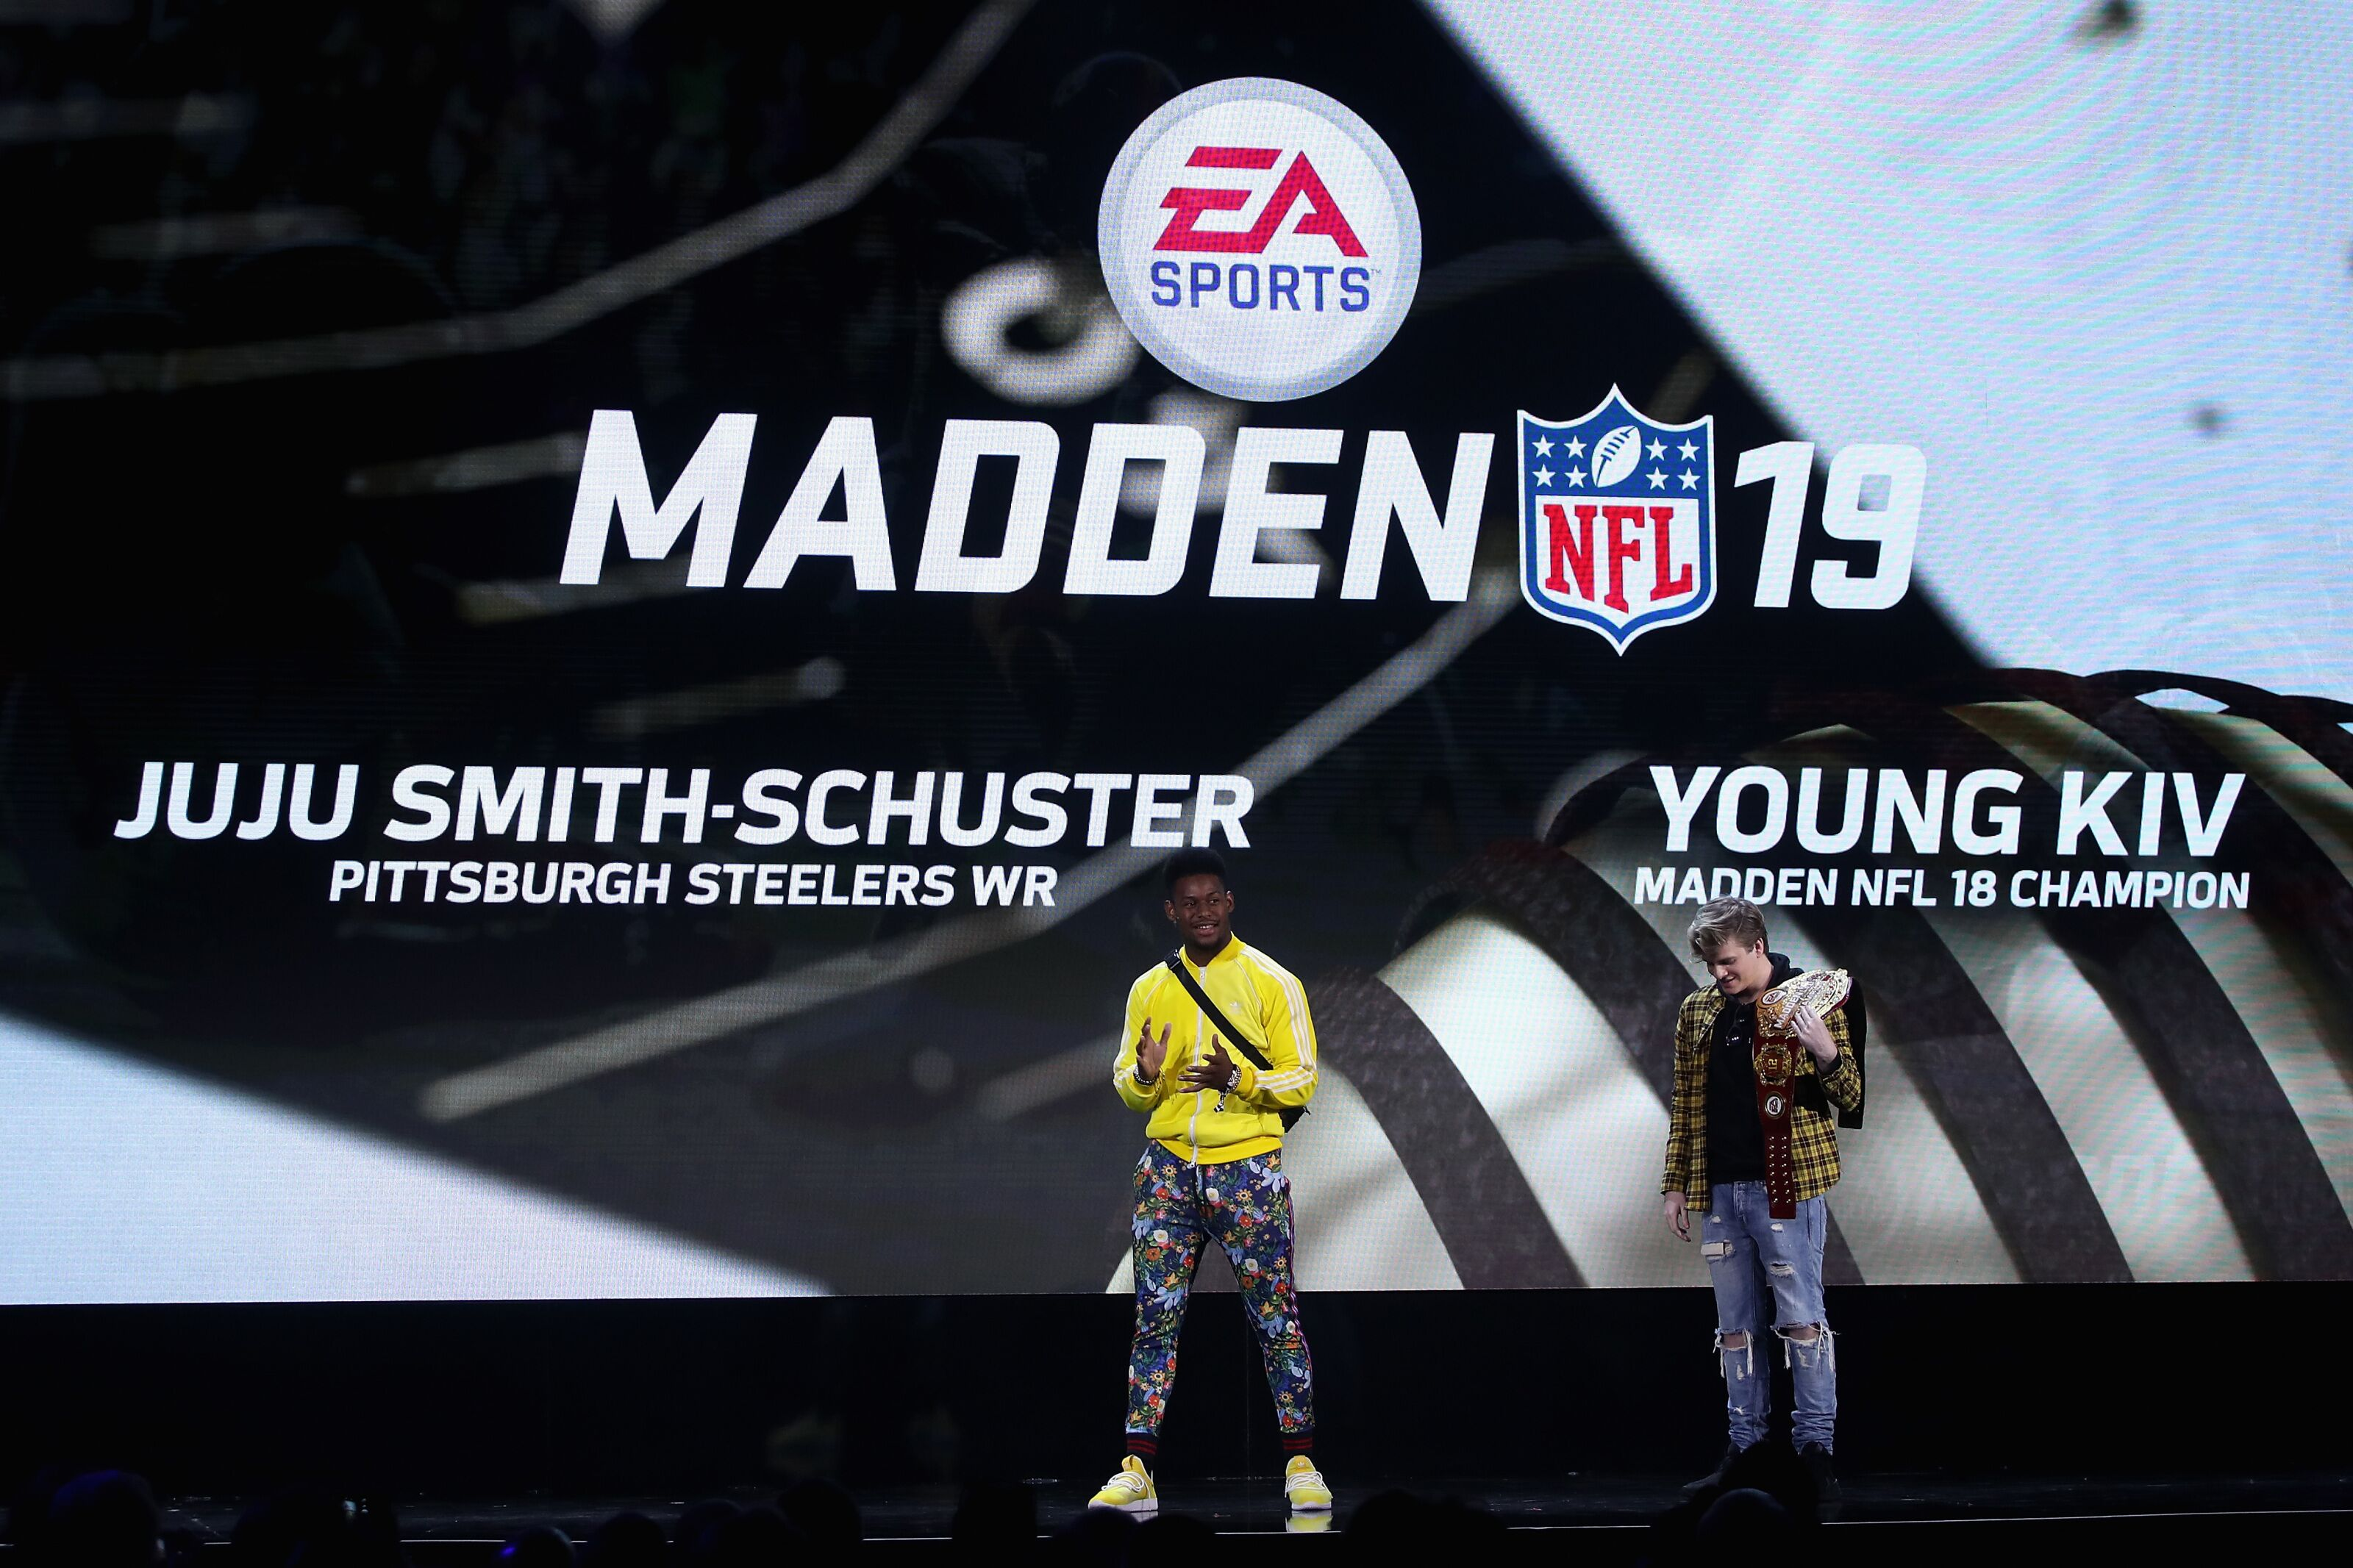 New York Jets: Madden NFL 19 offensive player ratings